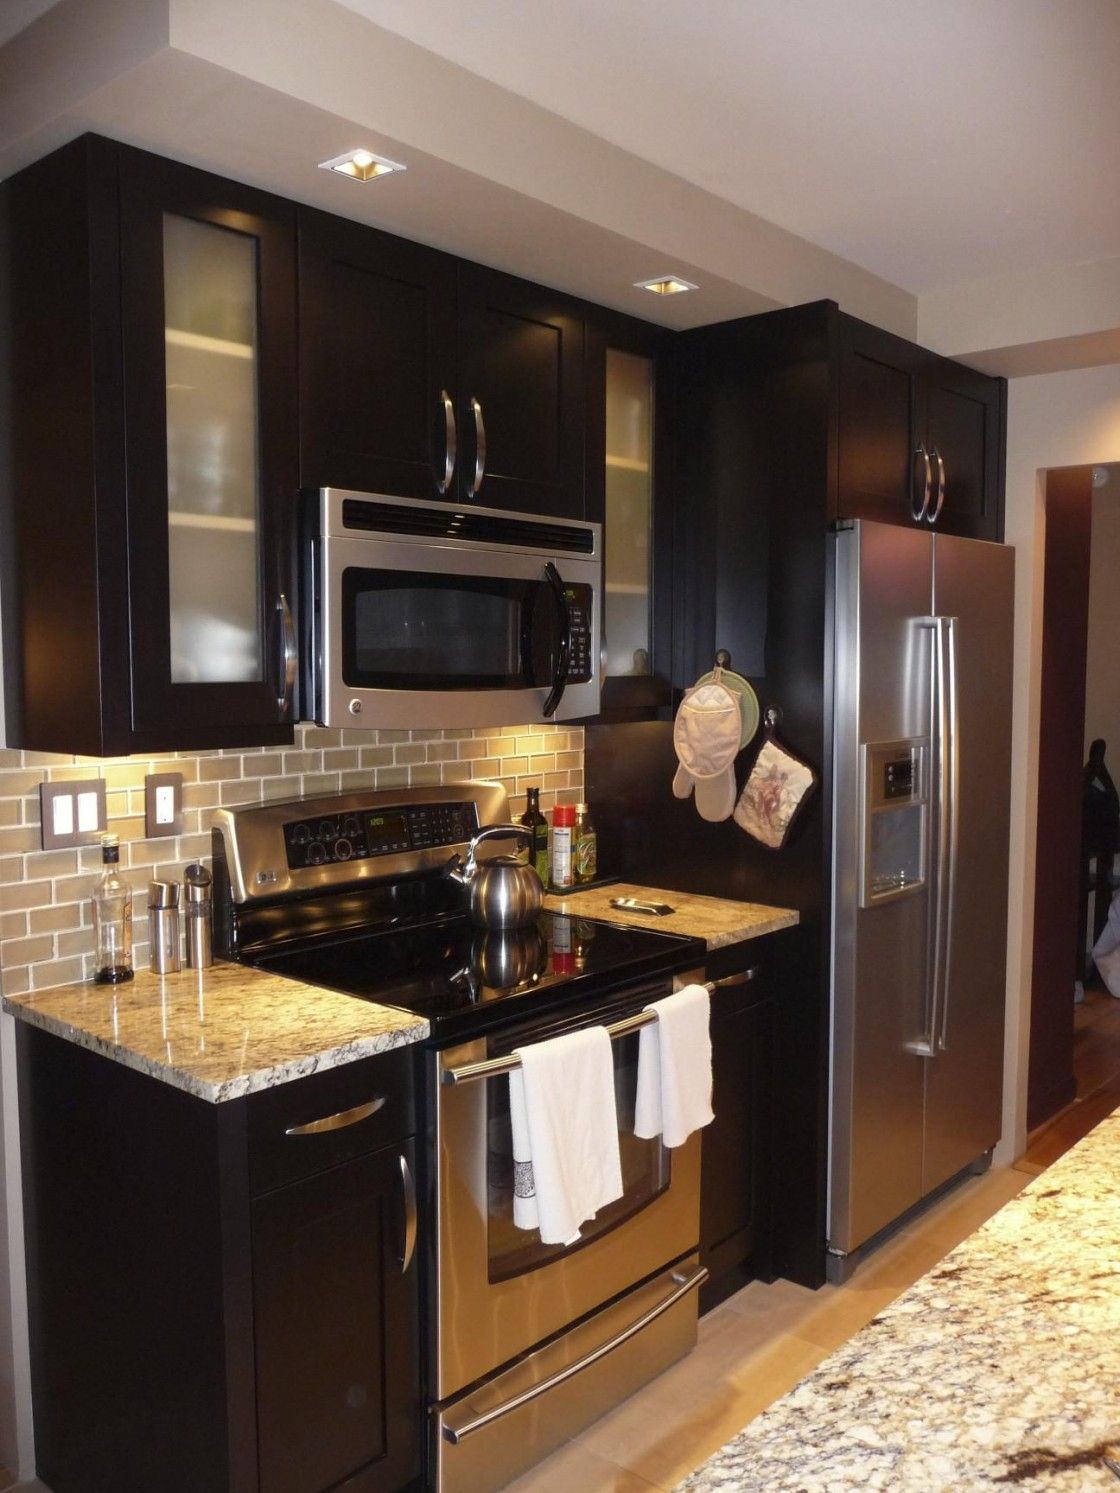 Small Kitchen Modern L Modern Small Kitchen Design With Black Painted Cherry Wood